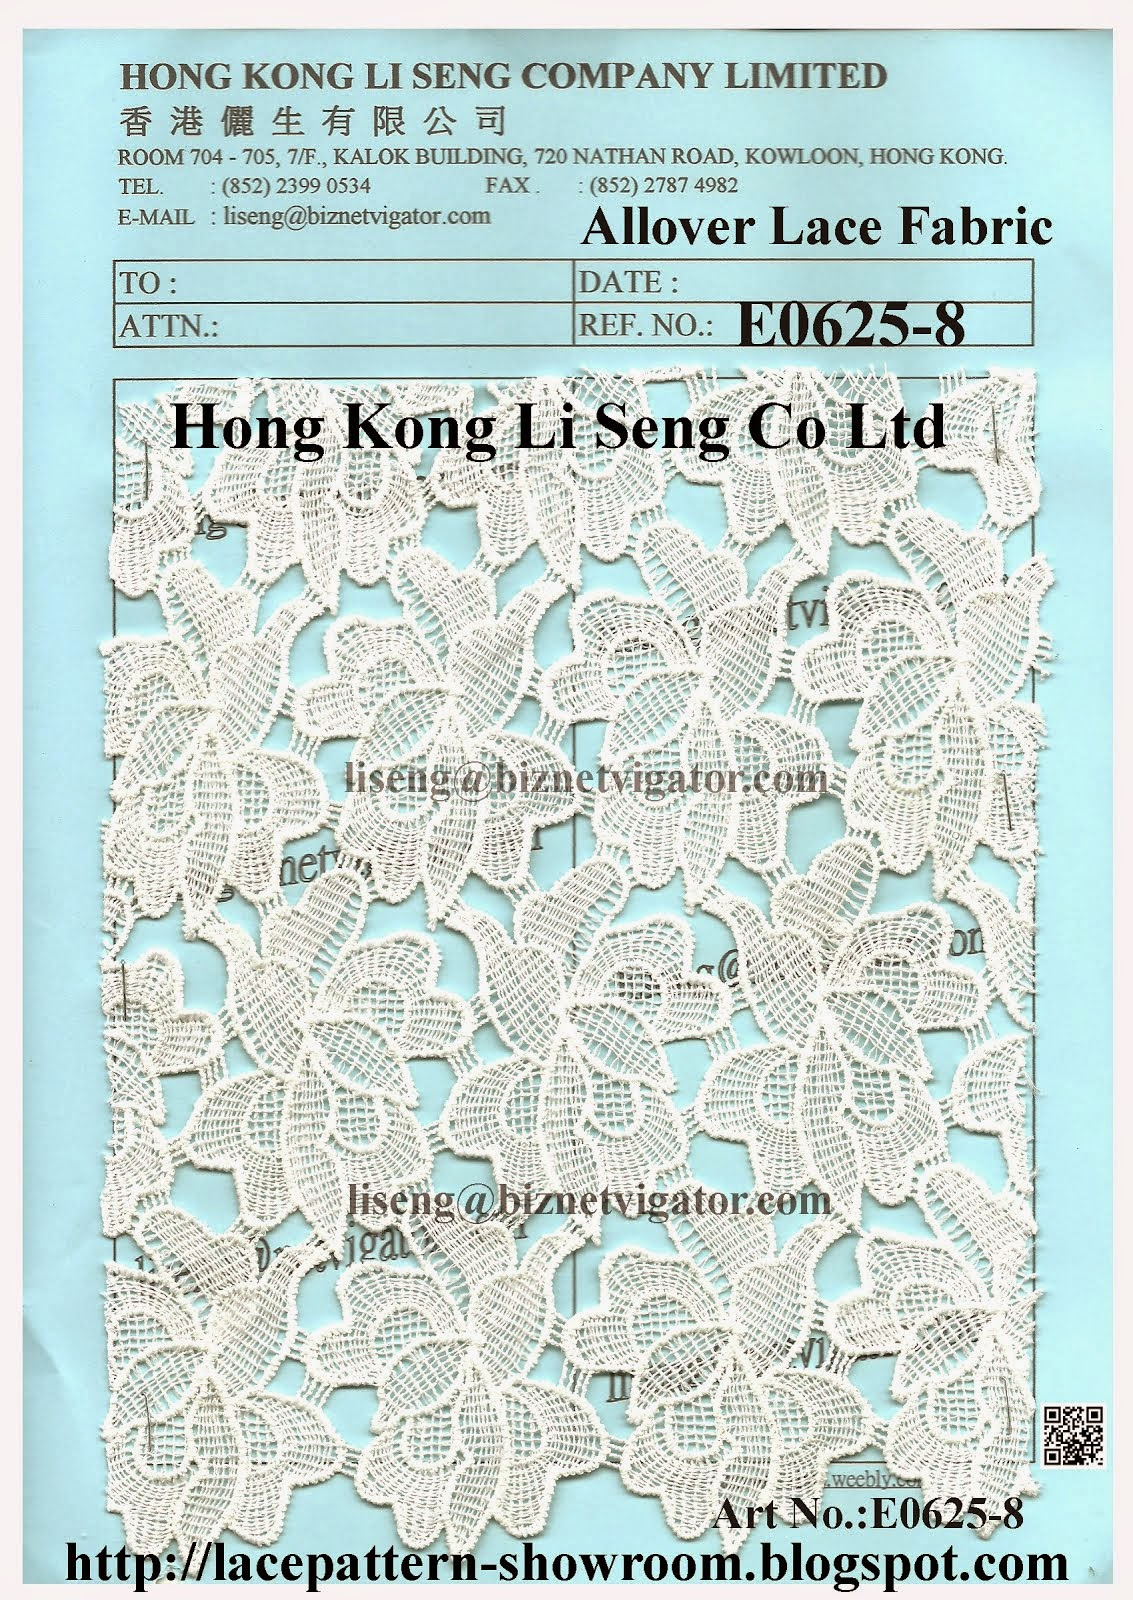 New Allover Embroidery Lace Fabric Manufacturer Wholesale Supplier - Hong Kong Li Seng Co Ltd